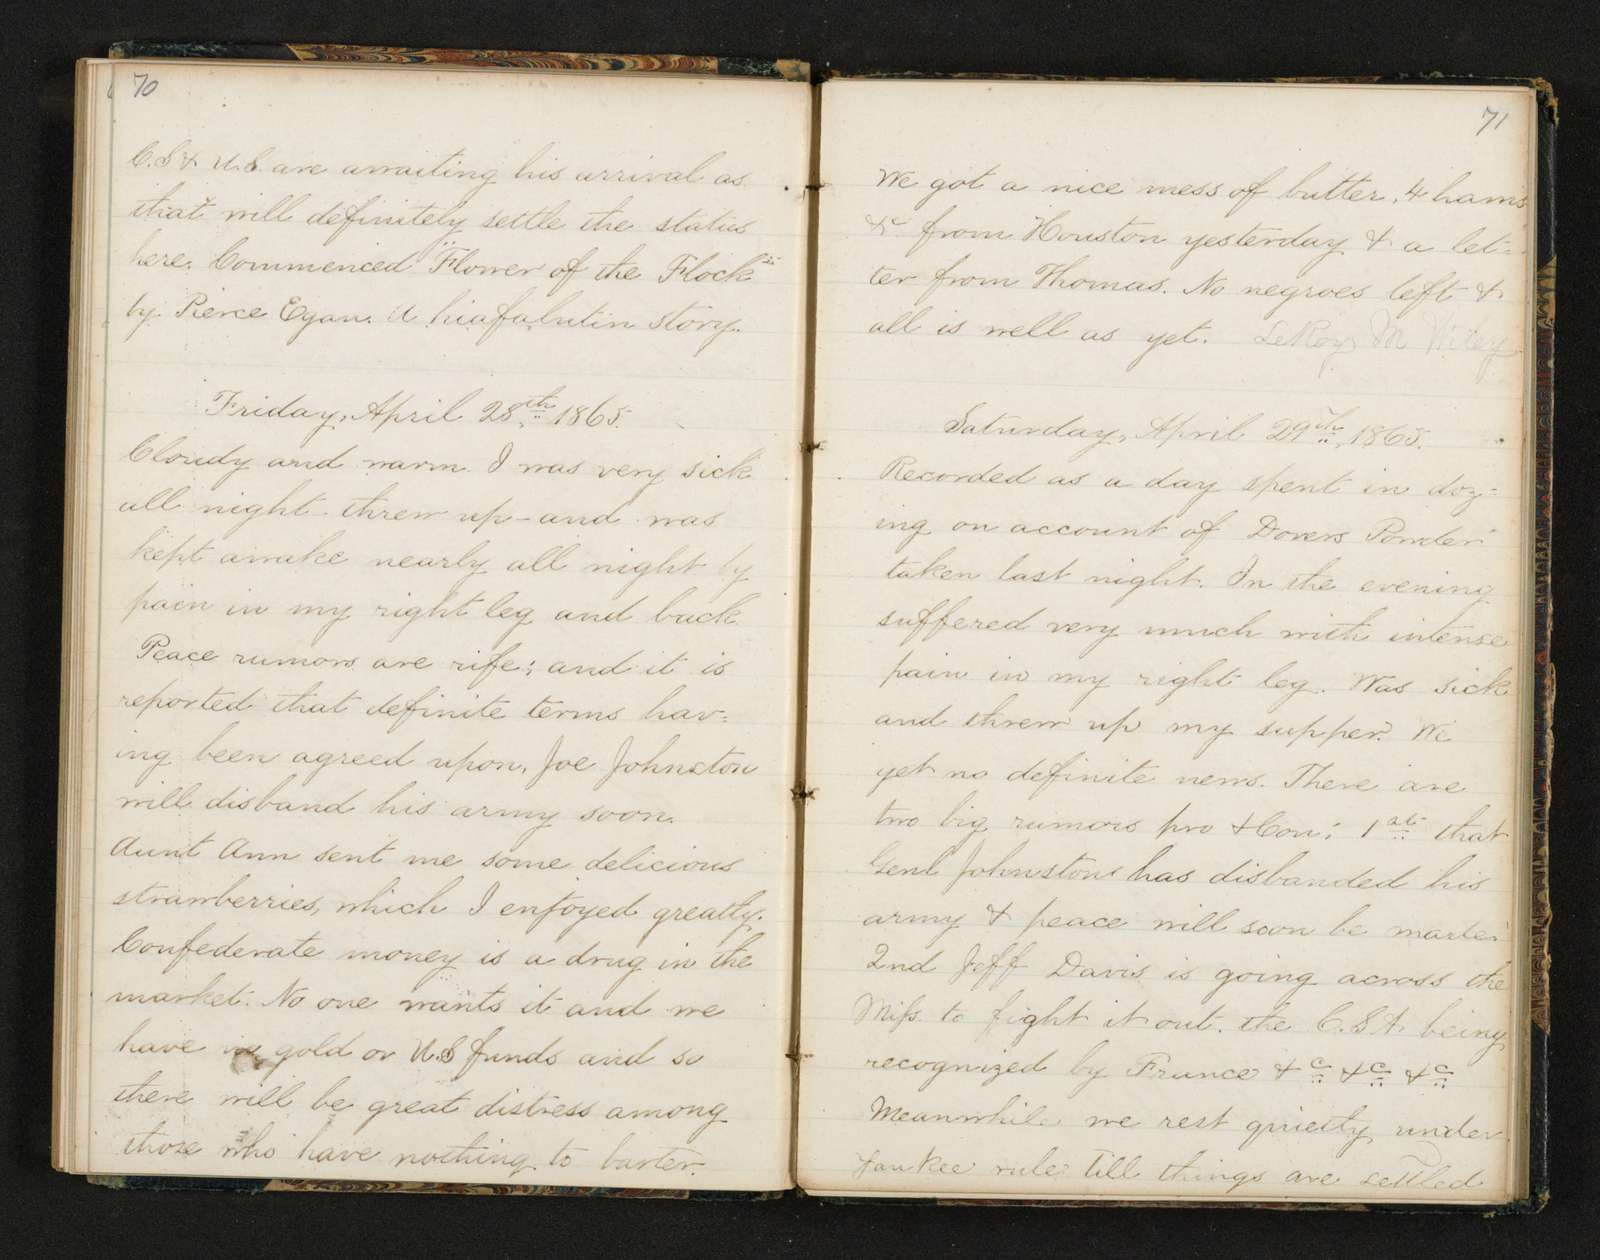 Lewis H. Machen Family Papers: Diaries and Diary Transcriptions, 1860-1865; Diaries; Gresham, LeRoy Wiley; 1865, 1 Jan.-9 June